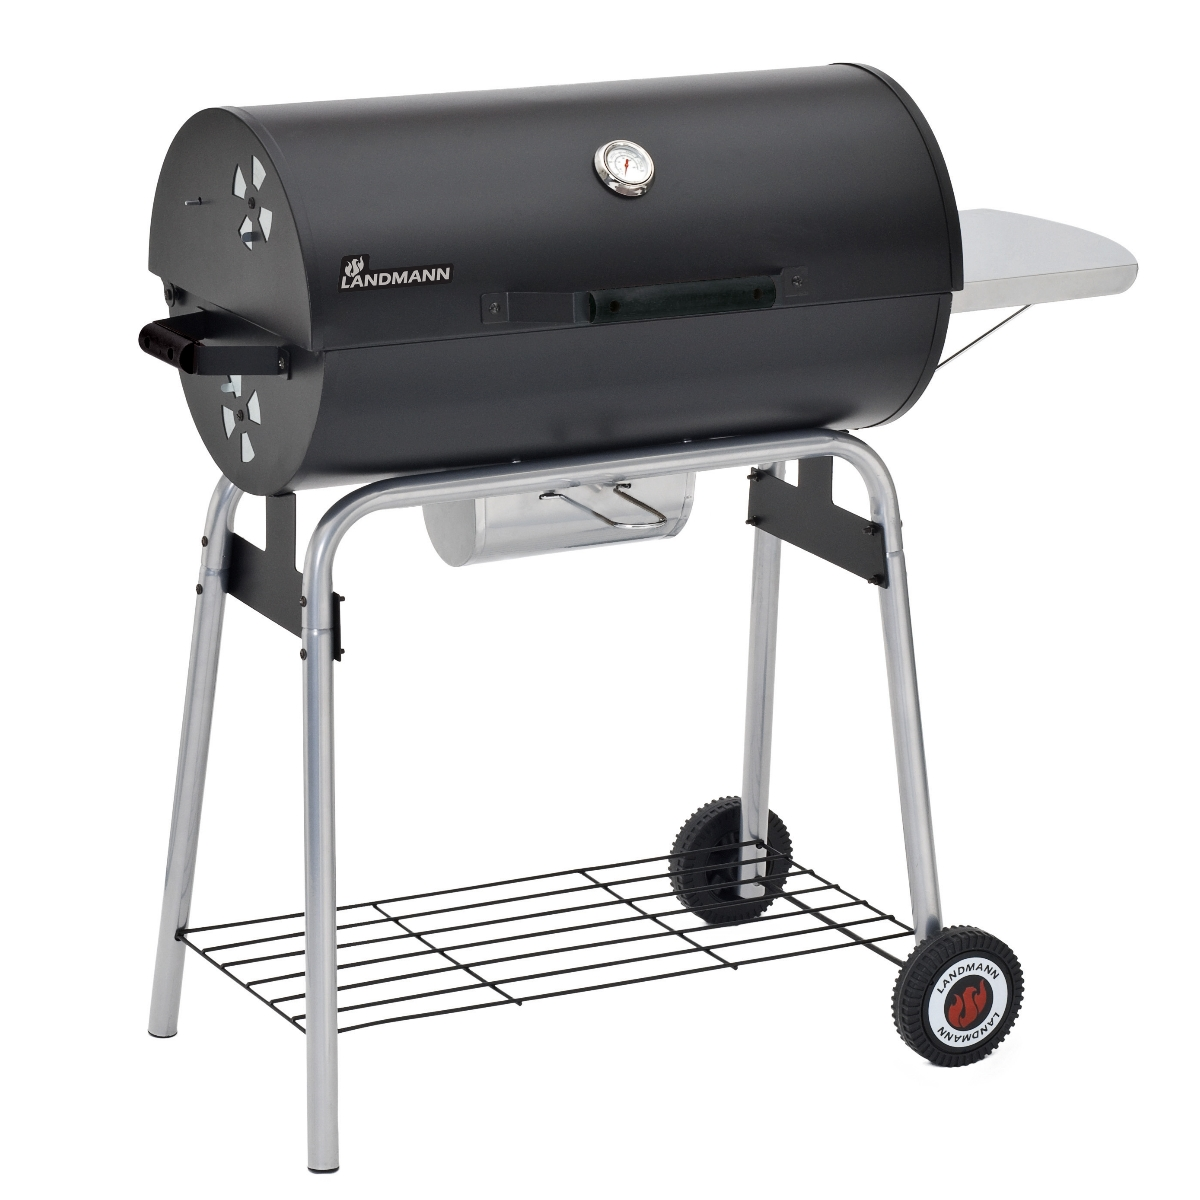 landmann taurus 660 barbecue black charcoal bbq wheels half barrel grill smoker ebay. Black Bedroom Furniture Sets. Home Design Ideas